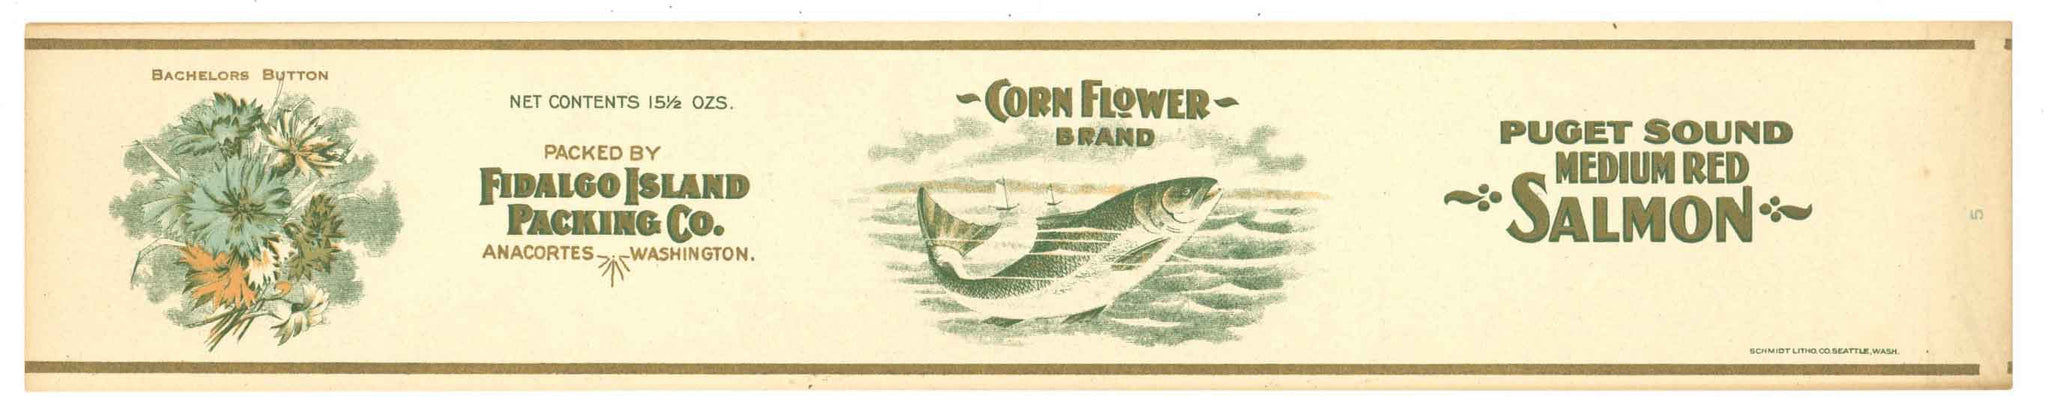 Corn Flower Brand Vintage Salmon Can Label, large flat